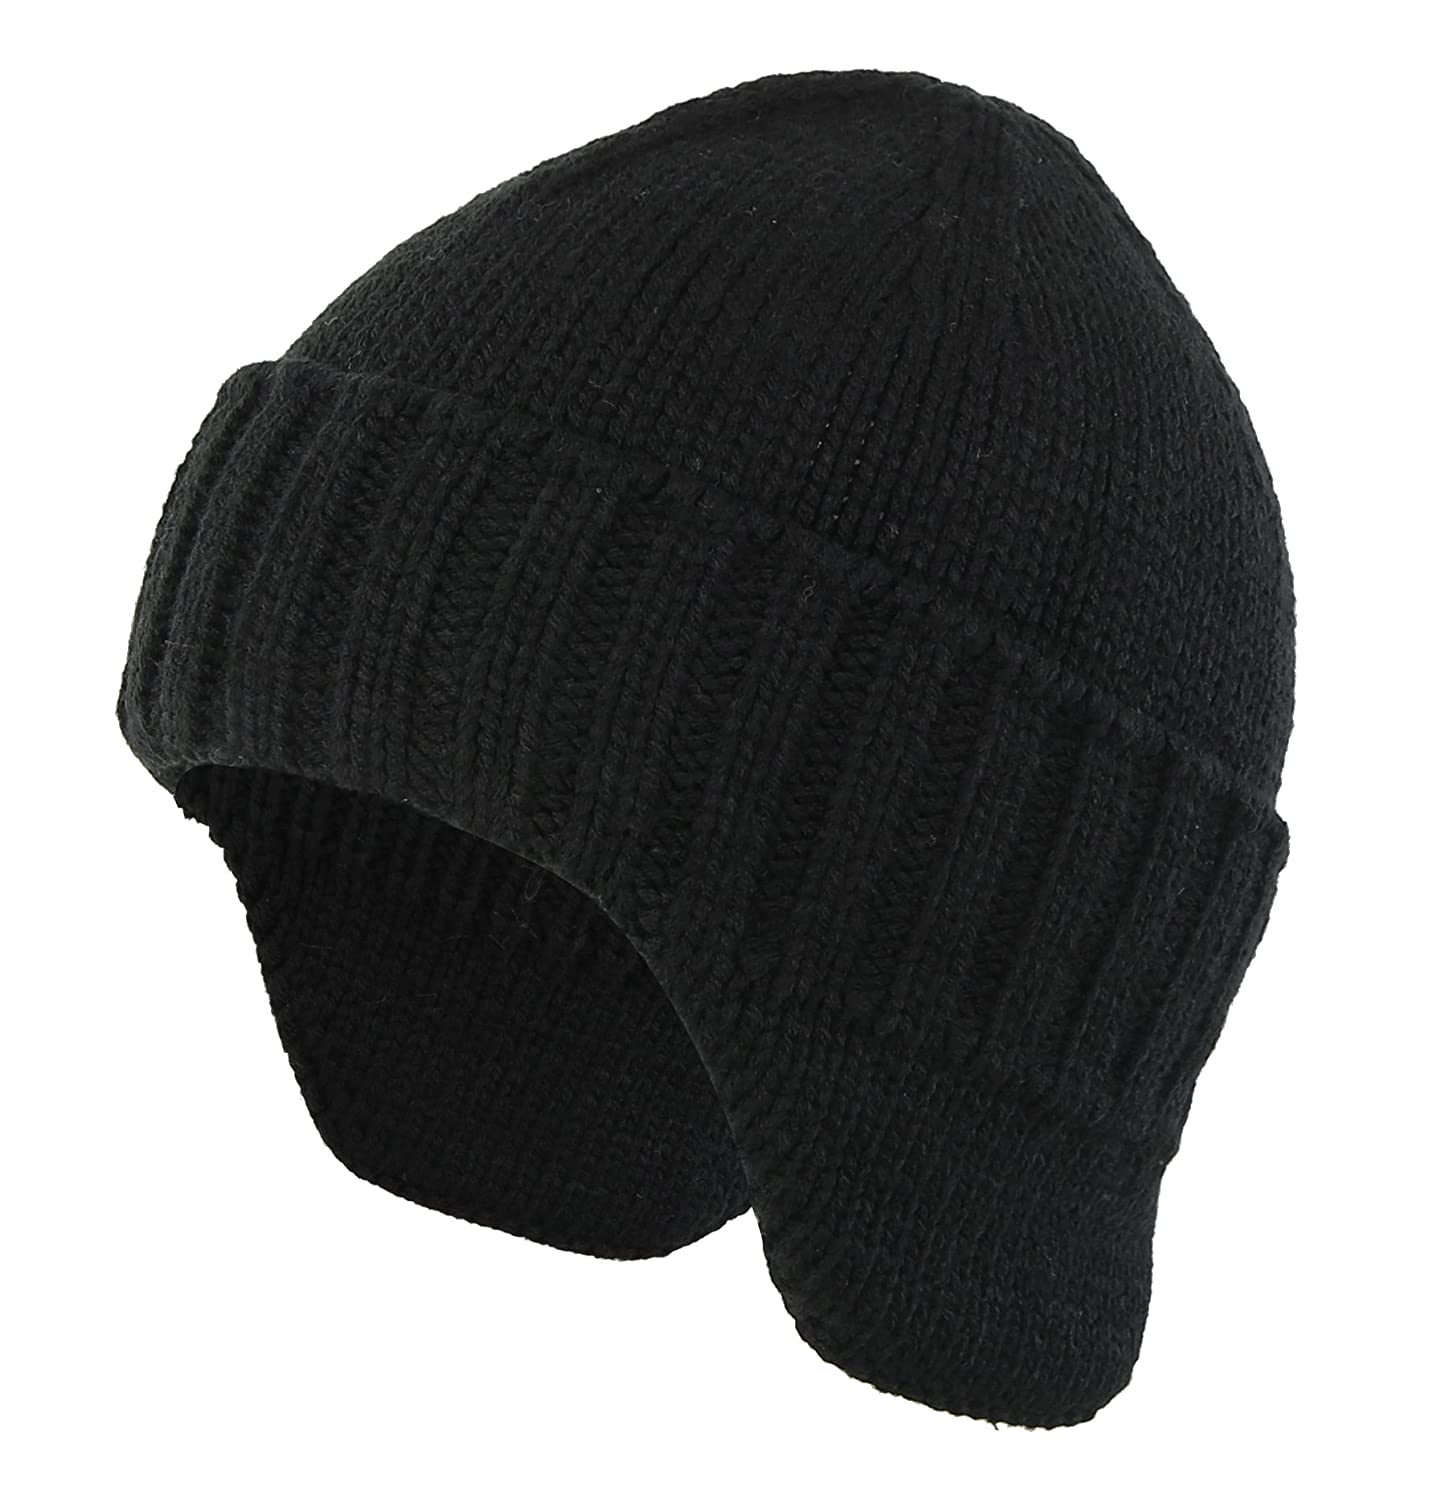 2b57821ad42 Top 10 wholesale Knitted Hats With Ears - Chinabrands.com